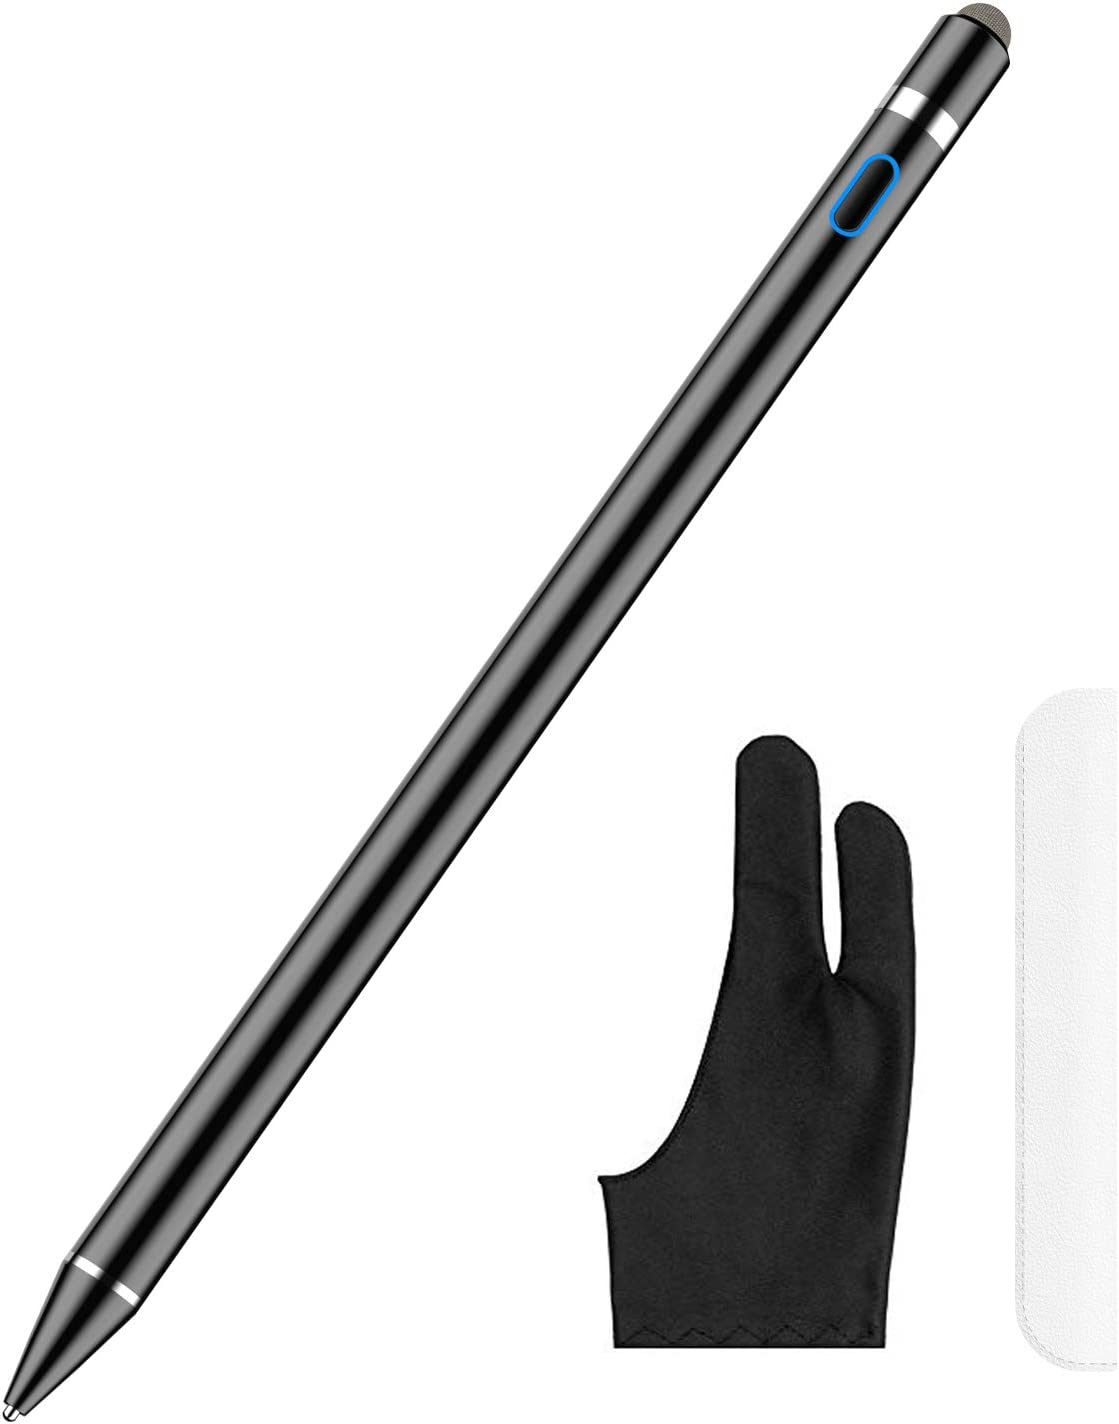 Stylus Pen for Touch Screens, XIRON Rechargeable 1.5 mm Fine Point Active Stylus Pen Smart Digital Pencil Compatible with iPad iPhone and Most Tablets High Precise Pencil with Glove